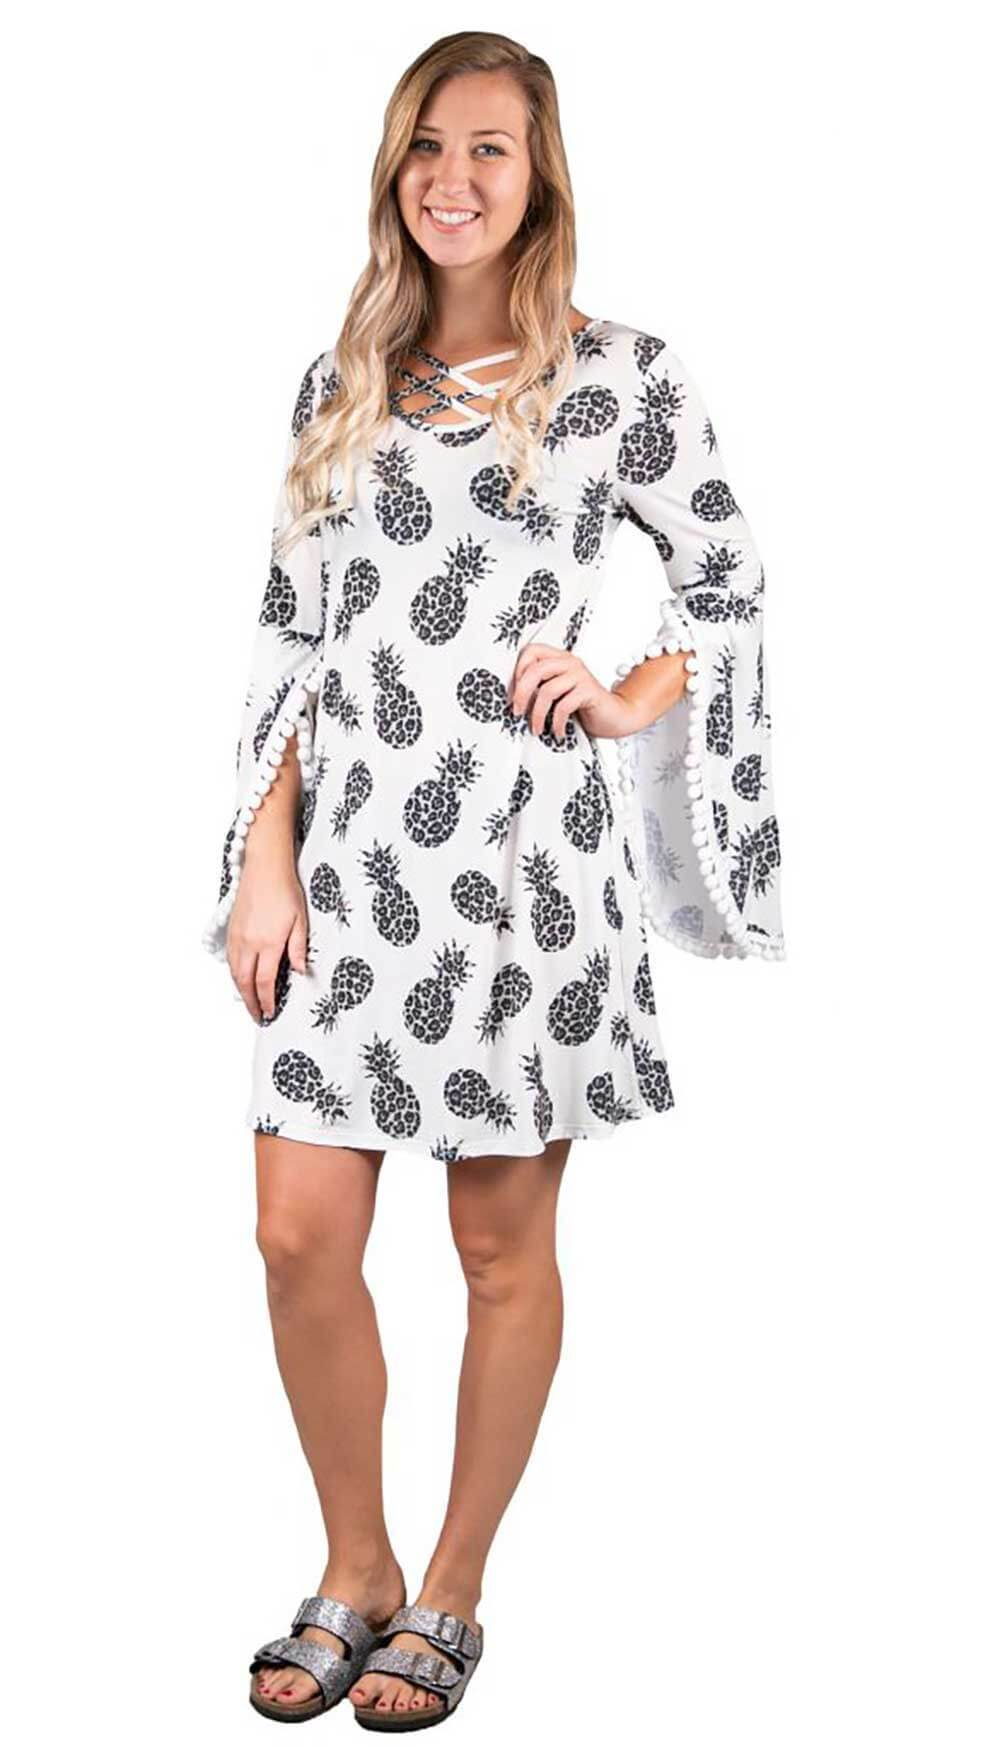 BELL SLEEVE DRESS-CHEETAH PINEAPPLE PRINT - Molly's! A Chic and Unique Boutique